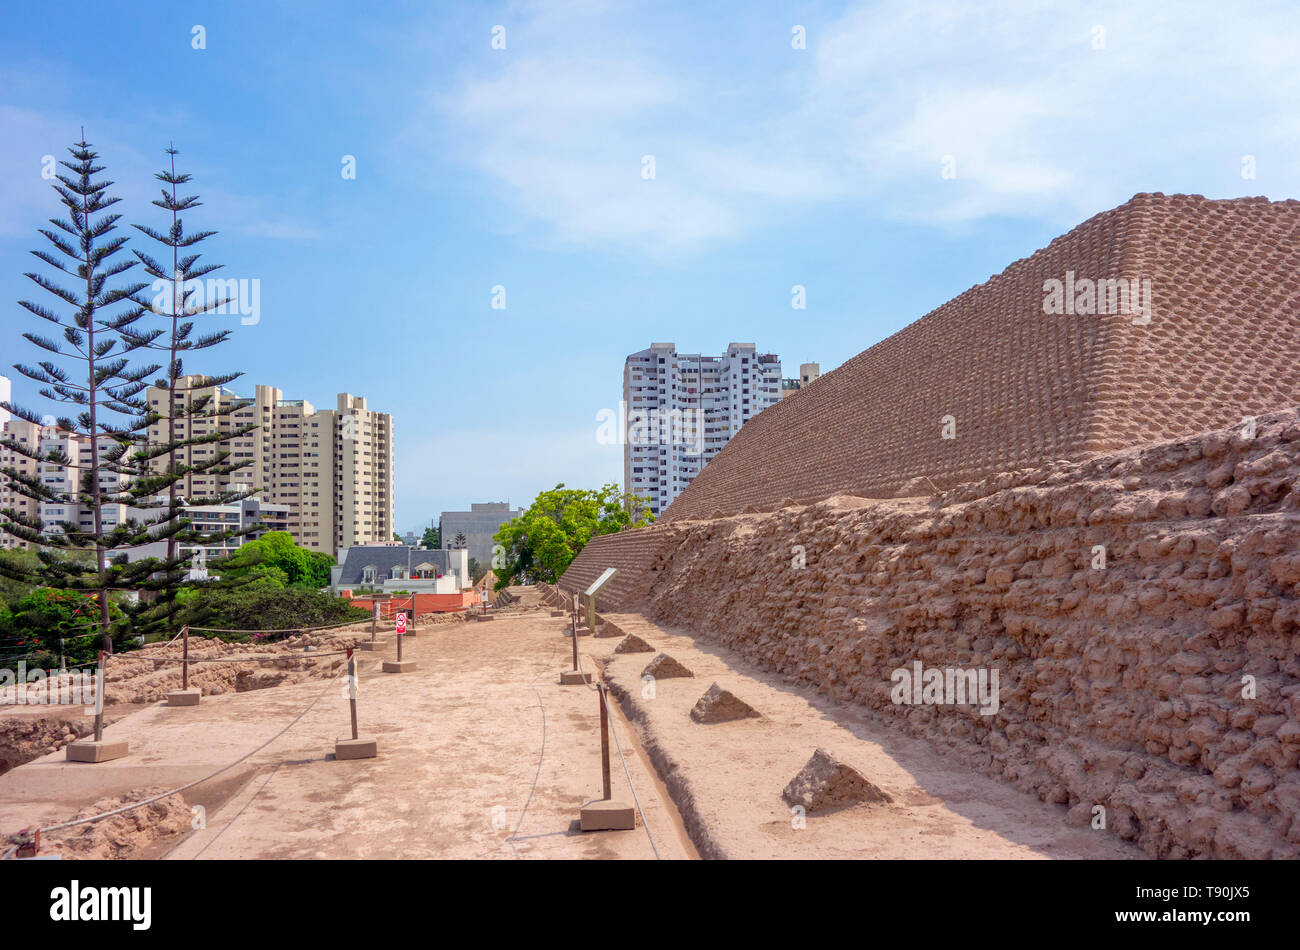 Huaca Huallamarca, an adobe pyramid dating from around 200 to 500 AD, San Isidro neighbourhood, Lima, Peru, South America - Stock Image